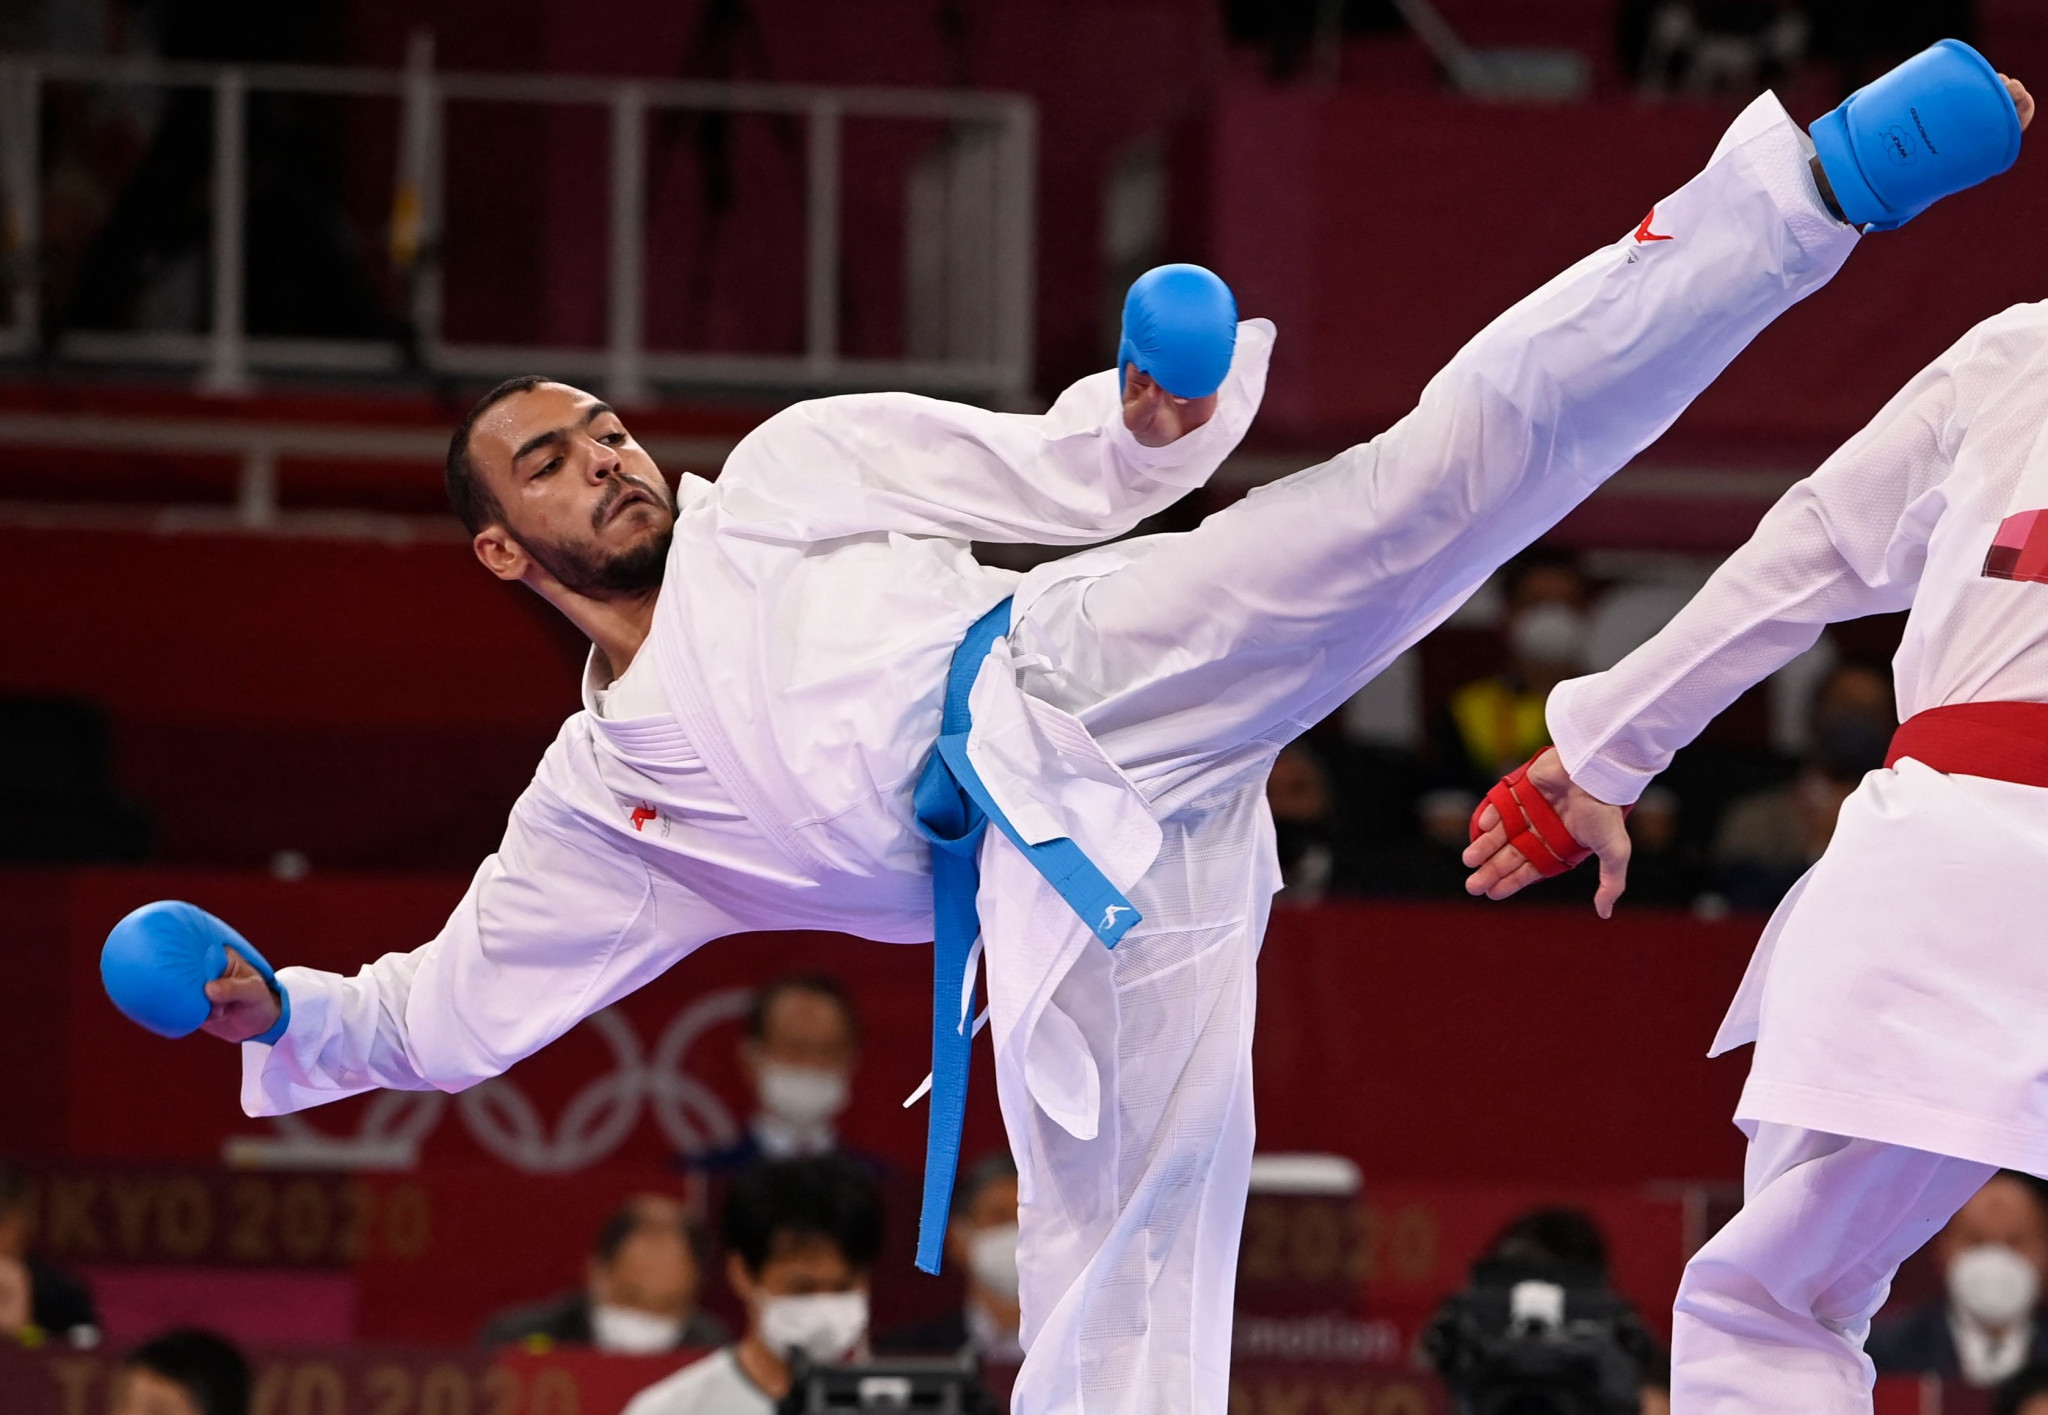 Abdalla Abdelaziz led the way for the host nation, reaching the men's under-75kg kumite final ©Getty Images